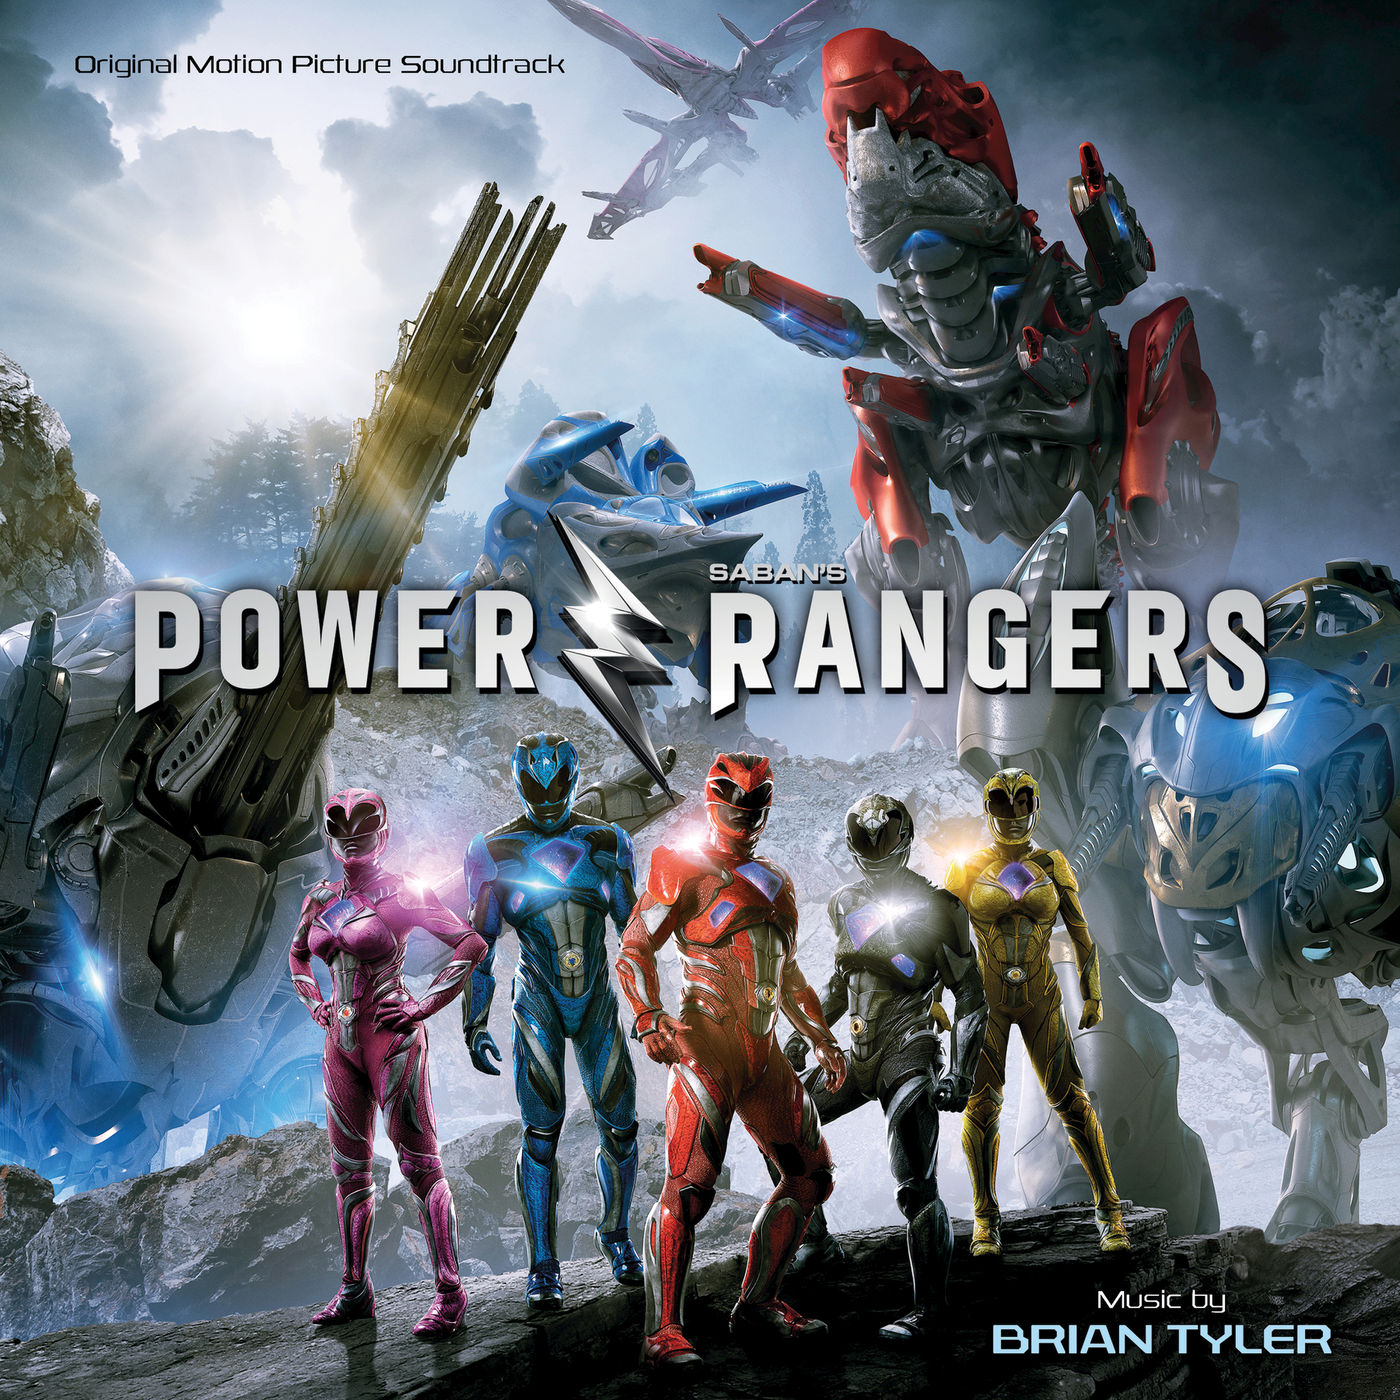 Brian Tyler - Power Rangers (Original Motion Picture Soundtrack)